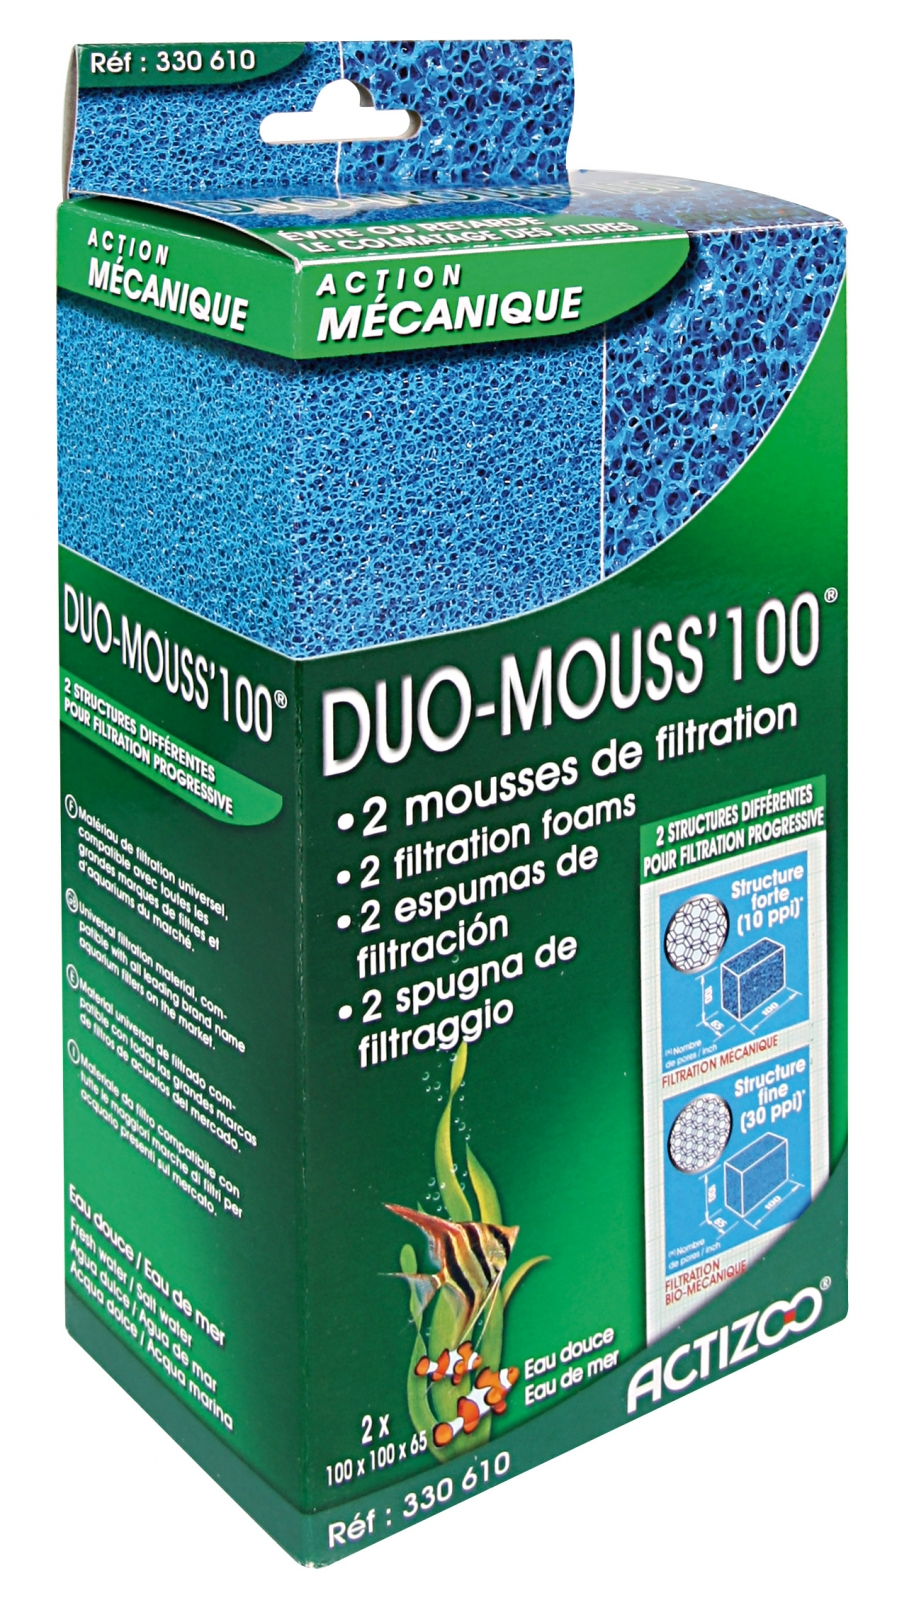 Mousses ACTIZOO Duo Mouss\'100 lot de 2 blocs de mousse 10 x 10 x 6,5 cm maille fine et maille large